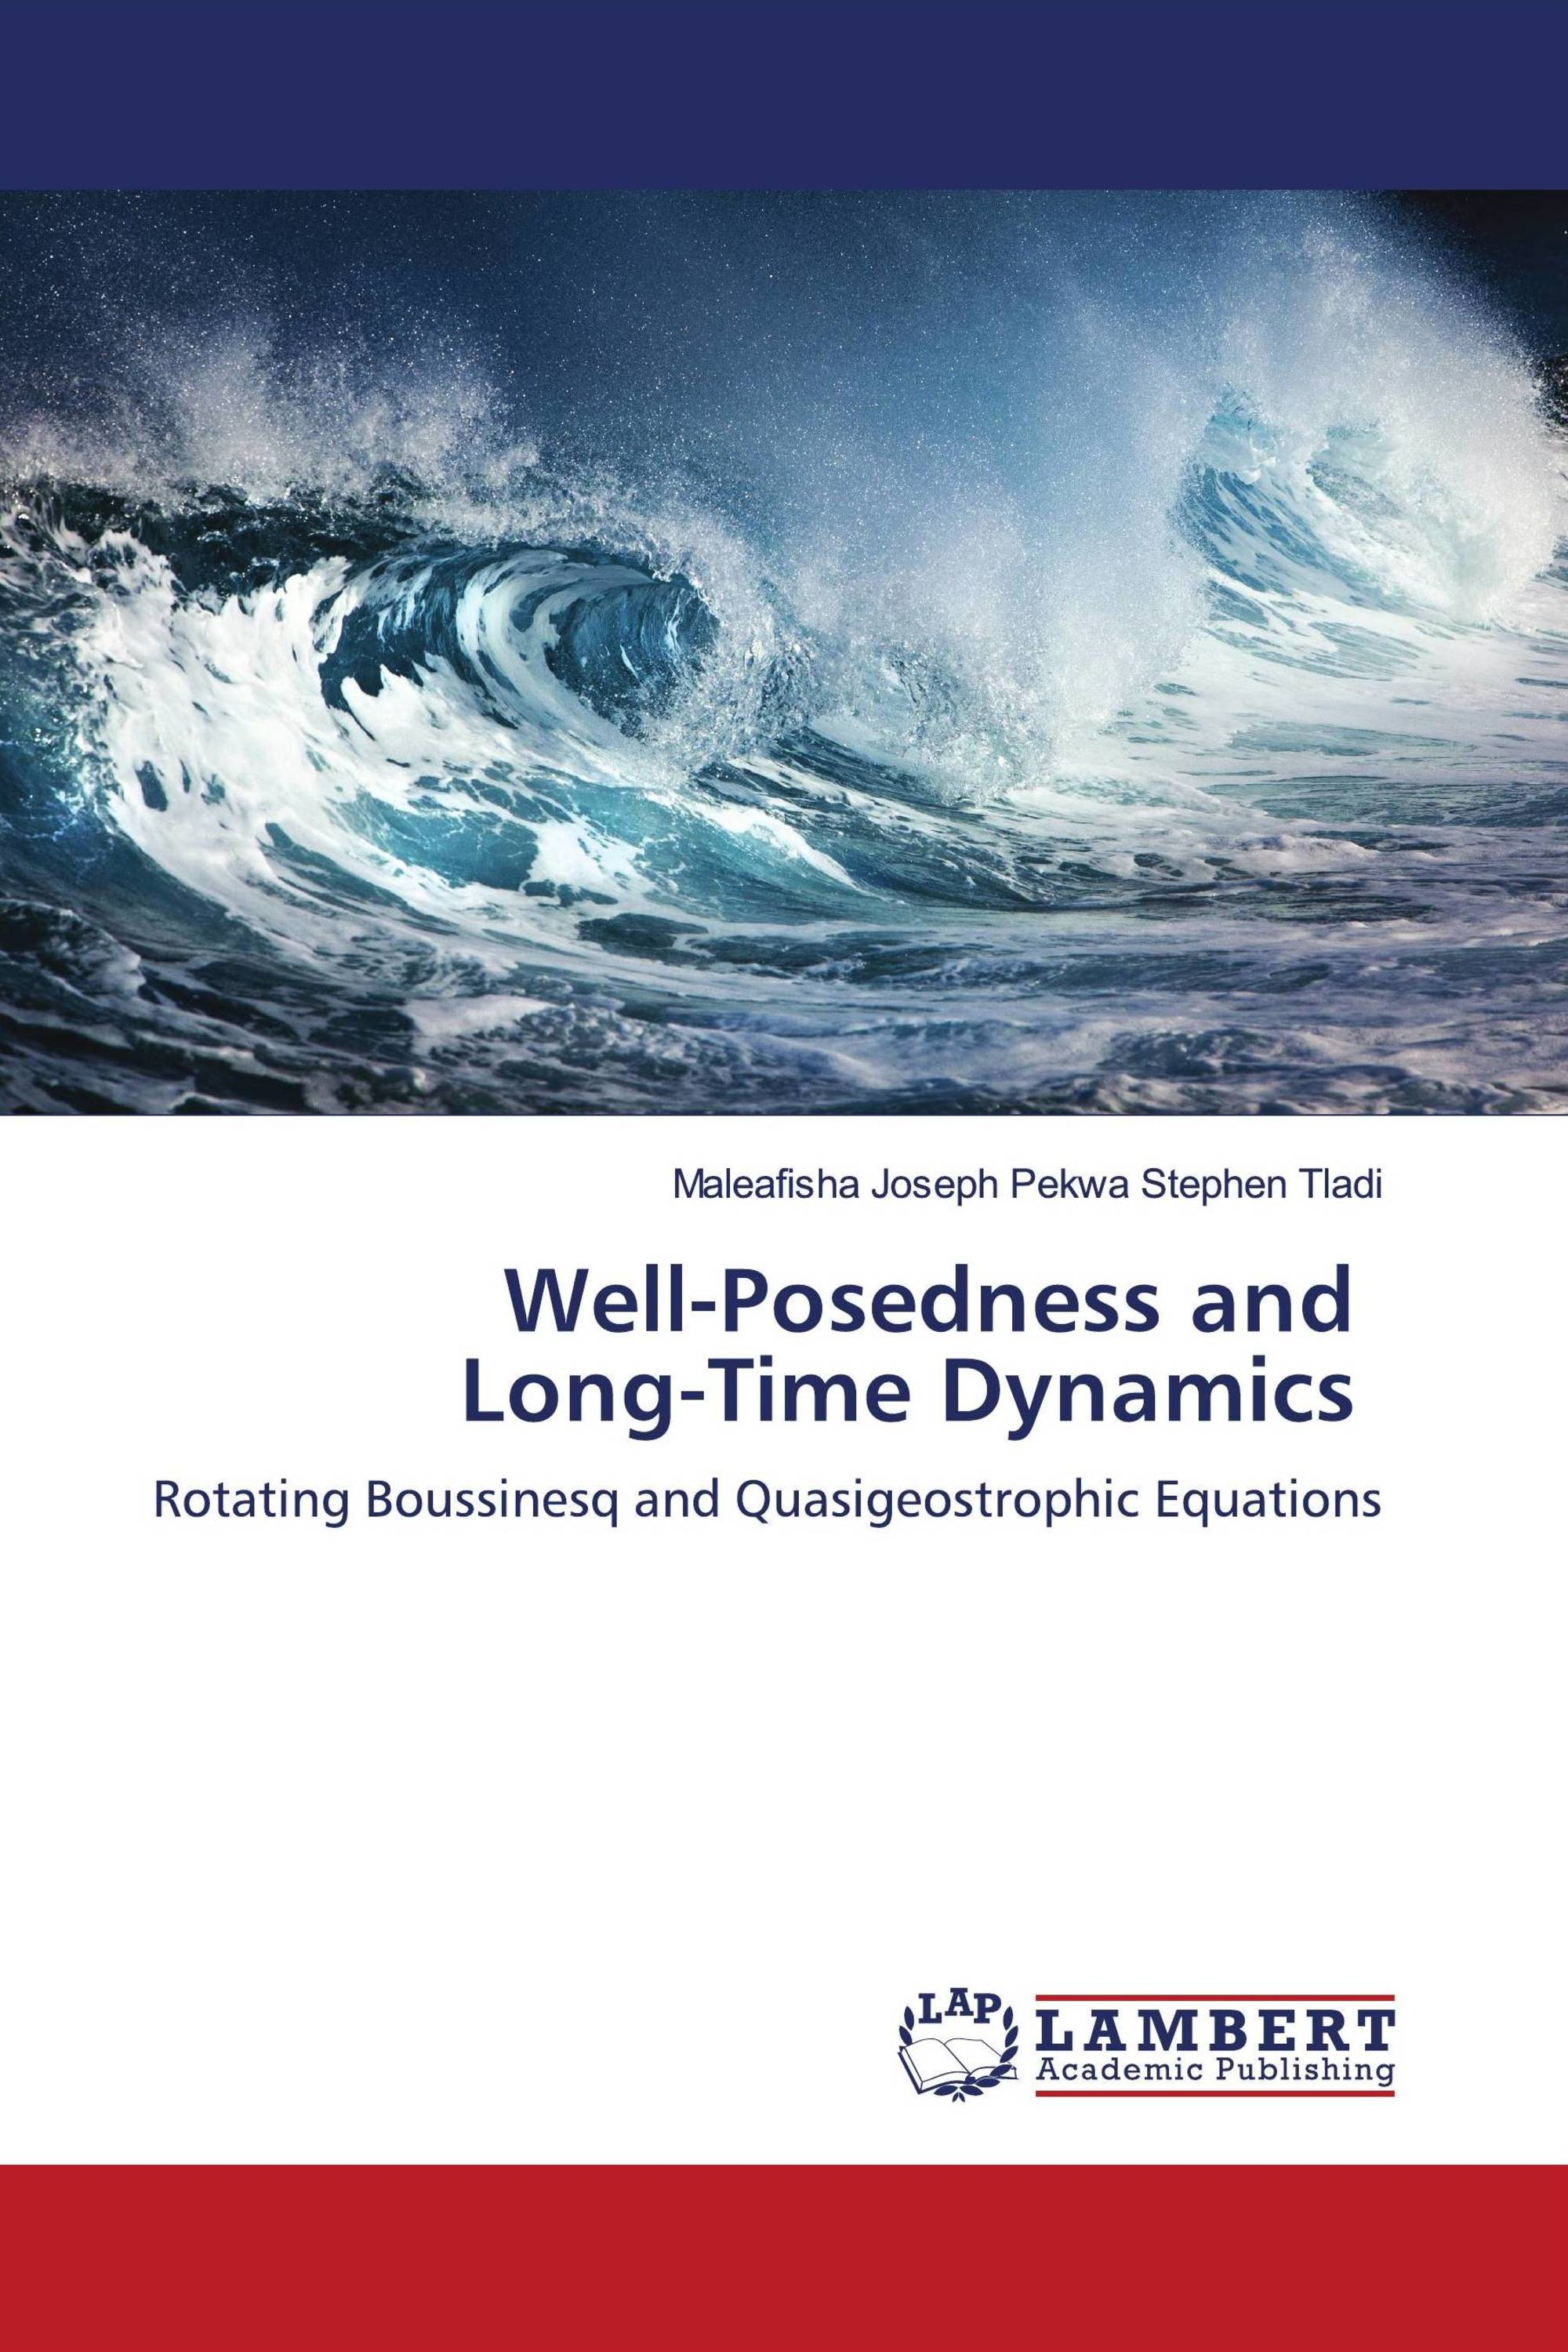 Well-Posedness and Long-Time Dynamics